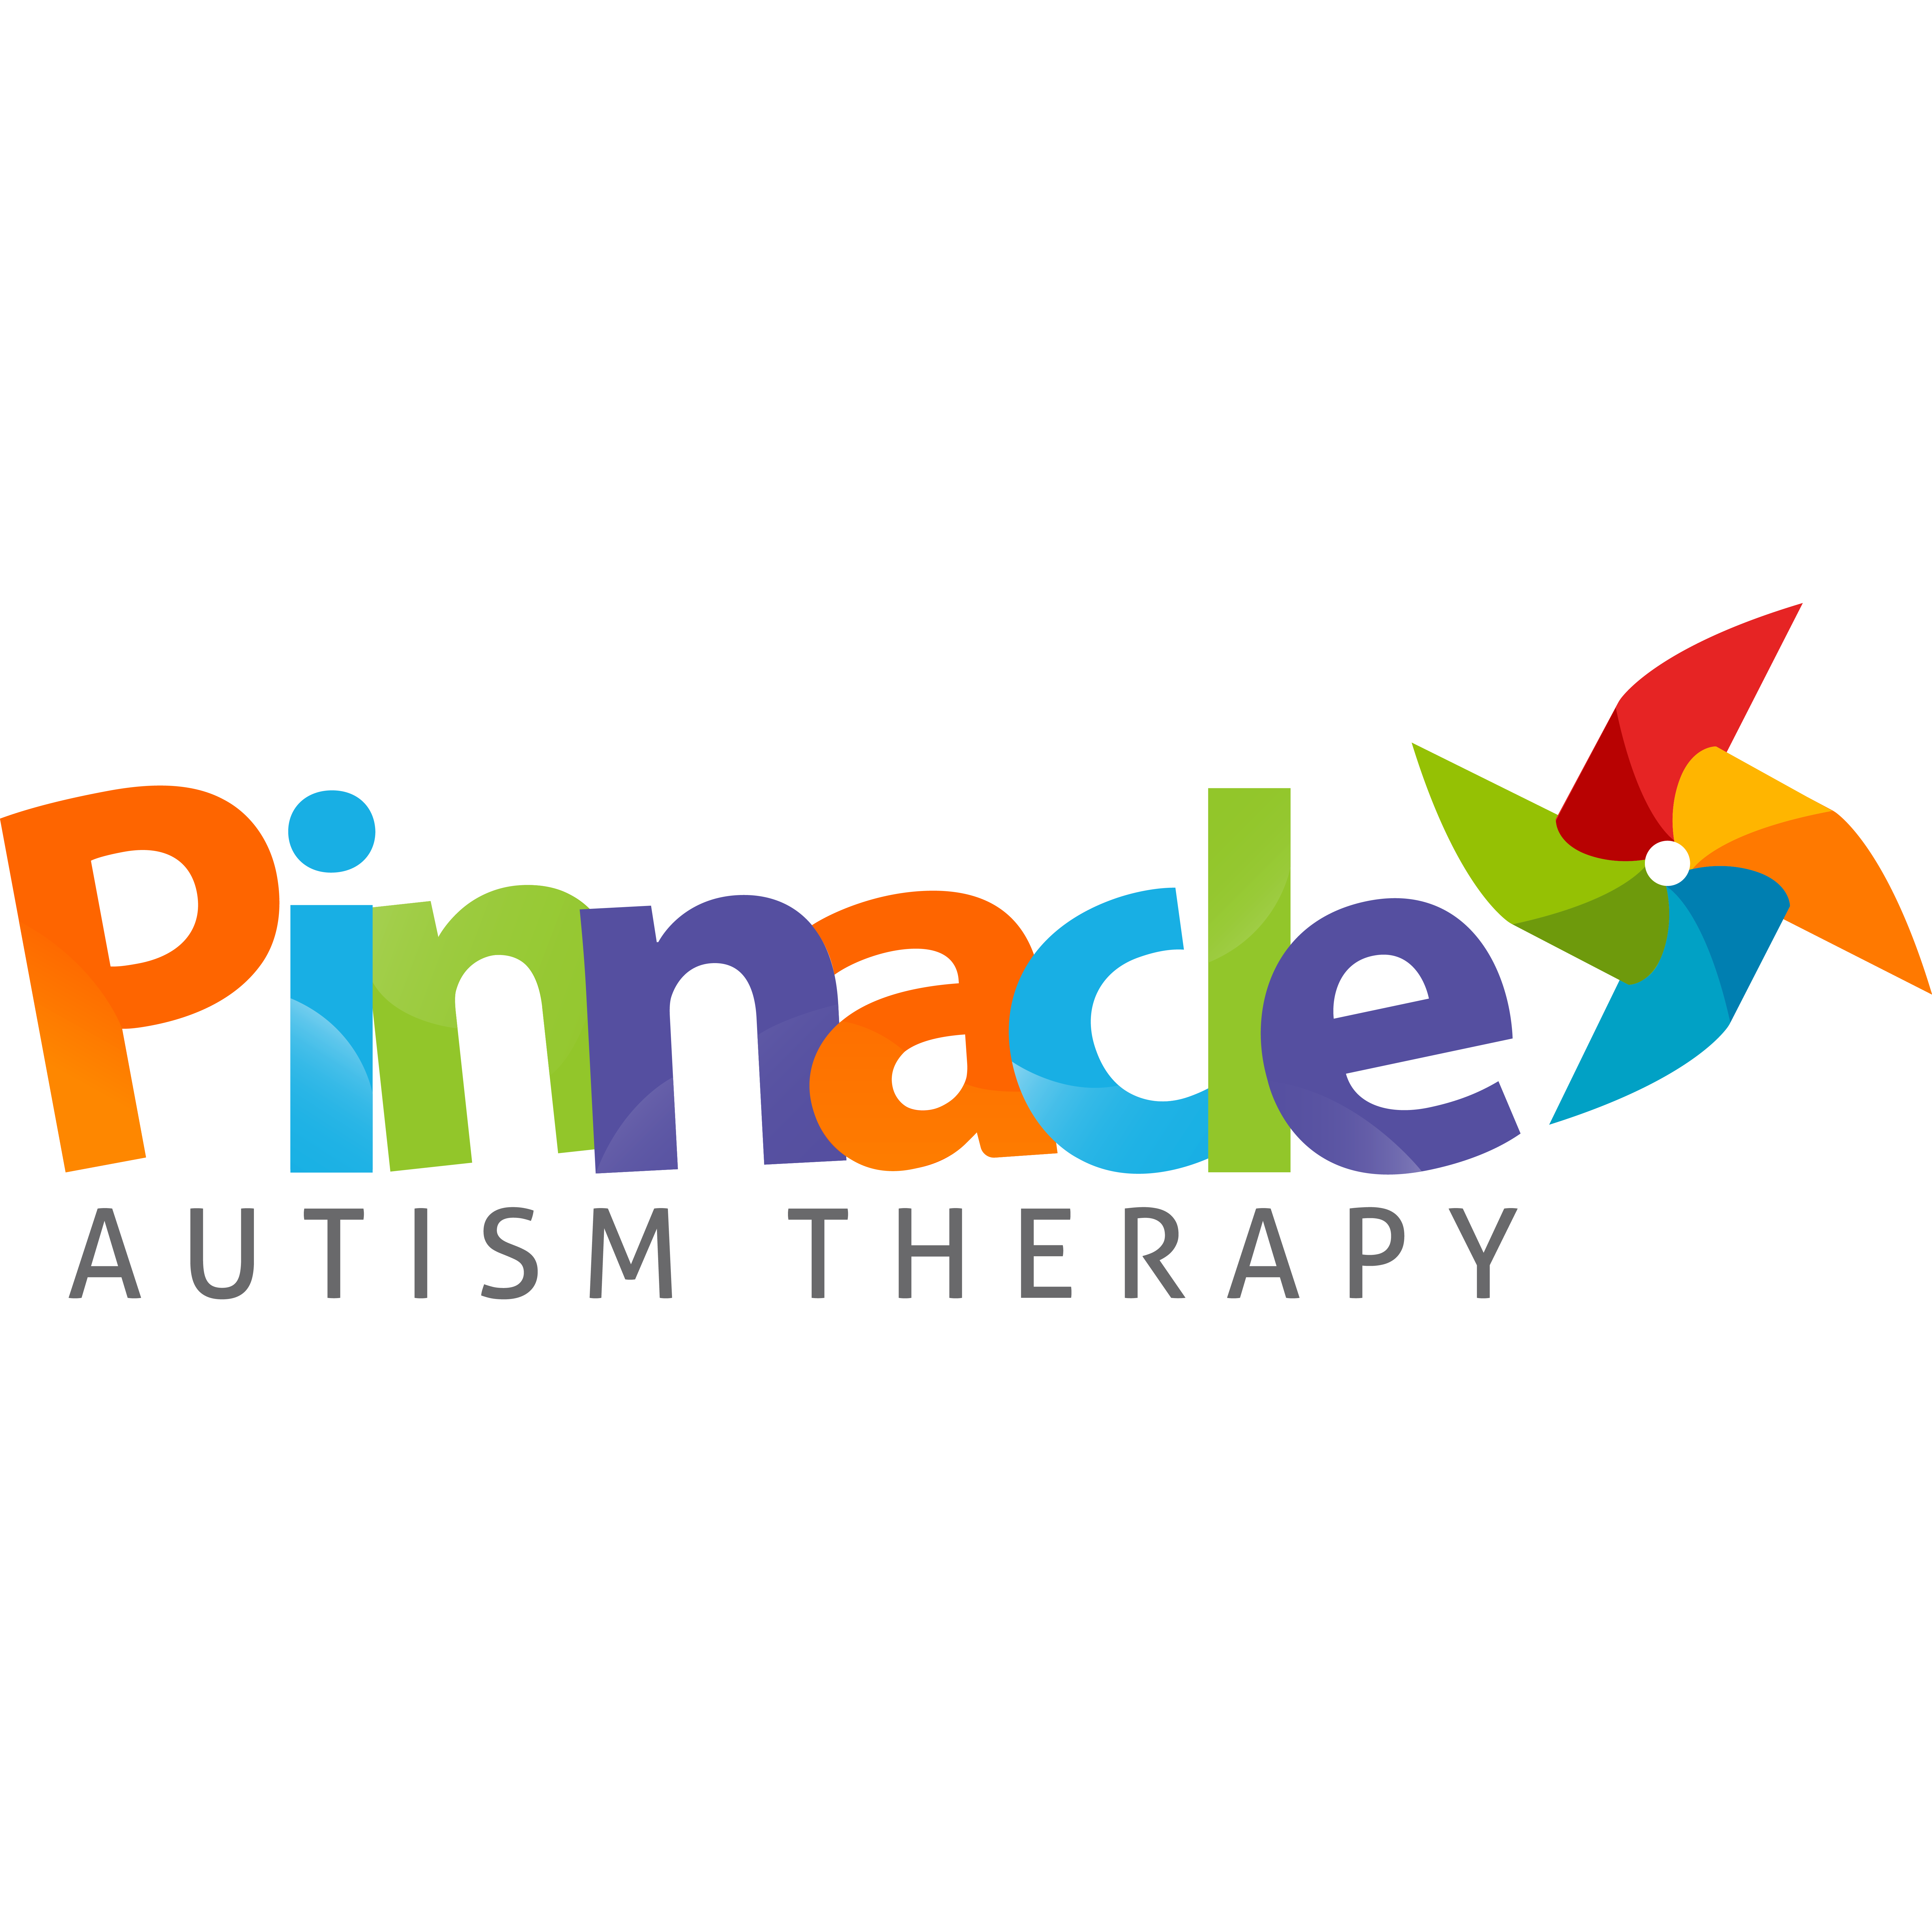 Pinnacle Autism Therapy